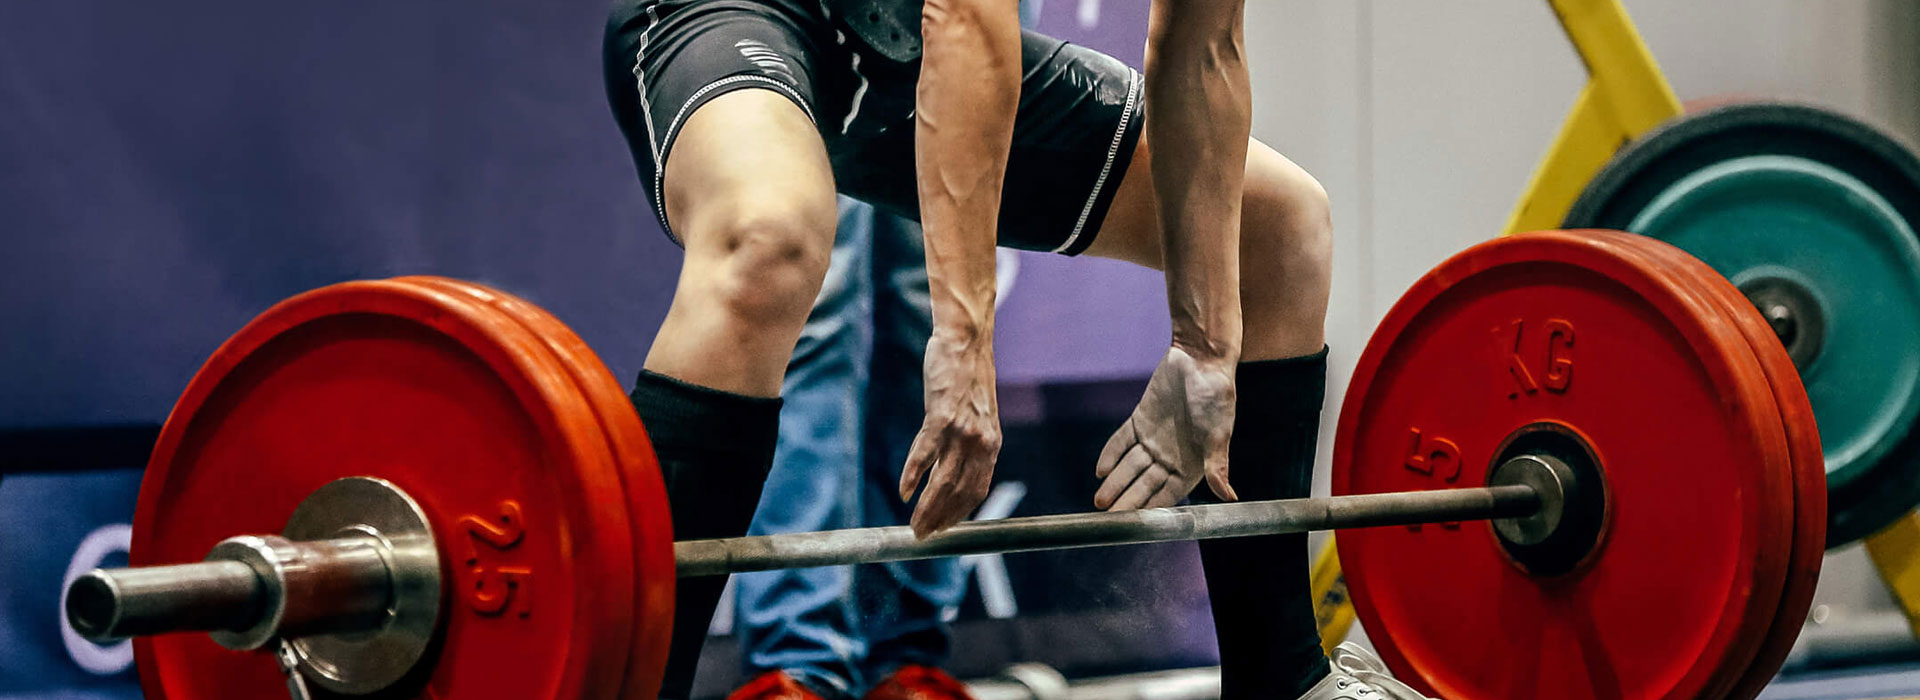 Top 5 Best Gyms To Join near St. Petersburg FL, Top 5 Best Gyms To Join near Tampa FL, Top 5 Best Gyms To Join near the Florida Panhandle